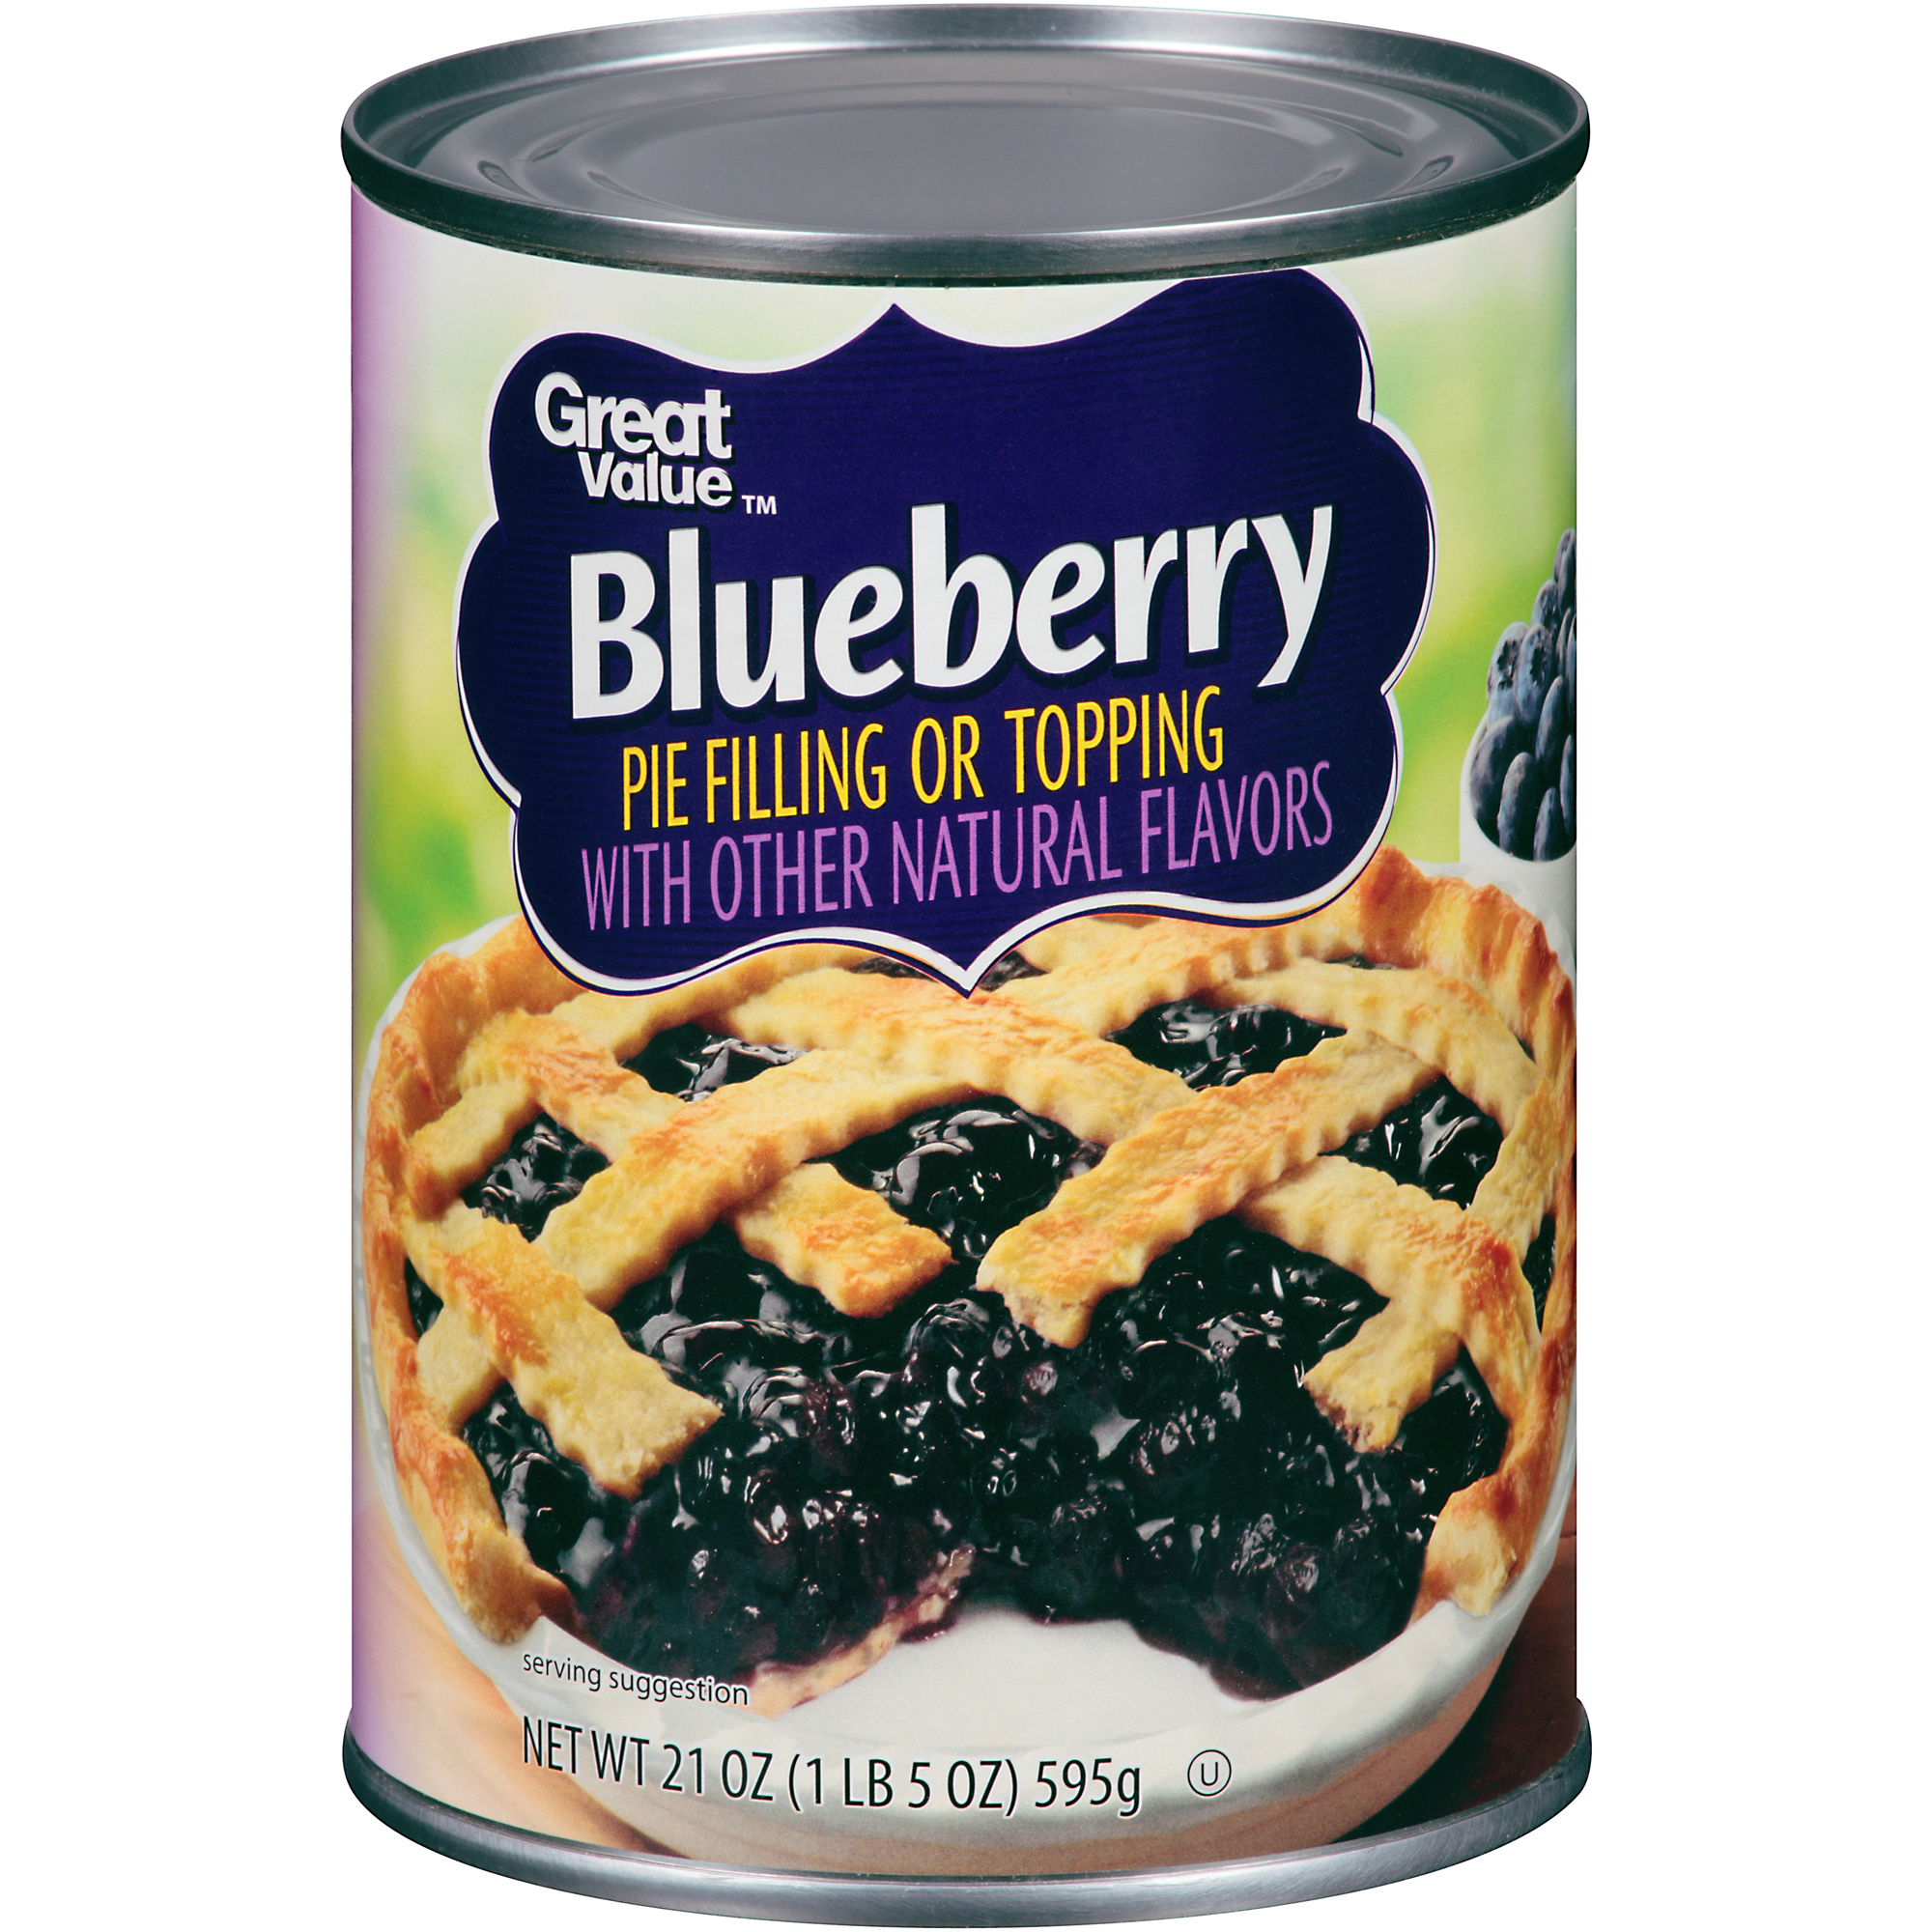 Great Value Blueberry Pie Filling or Topping, 21 oz